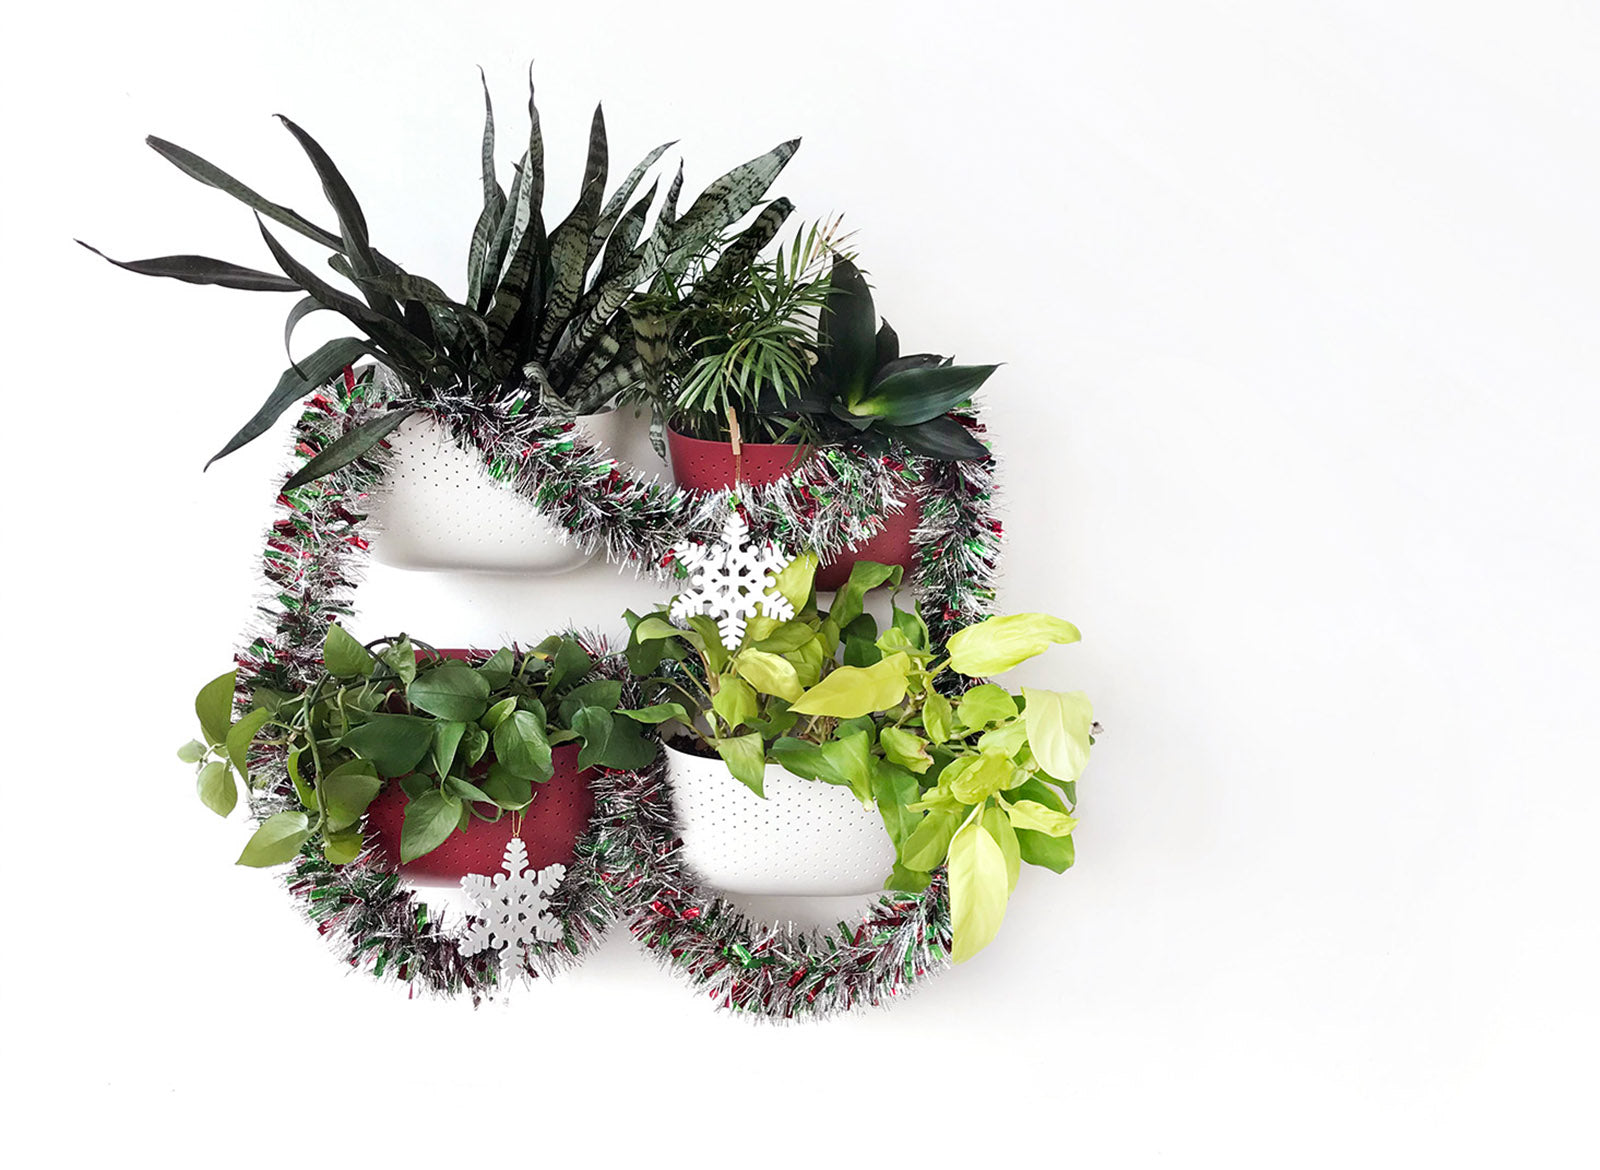 5 Ways To Decorate Your Plant Wall for the Holidays